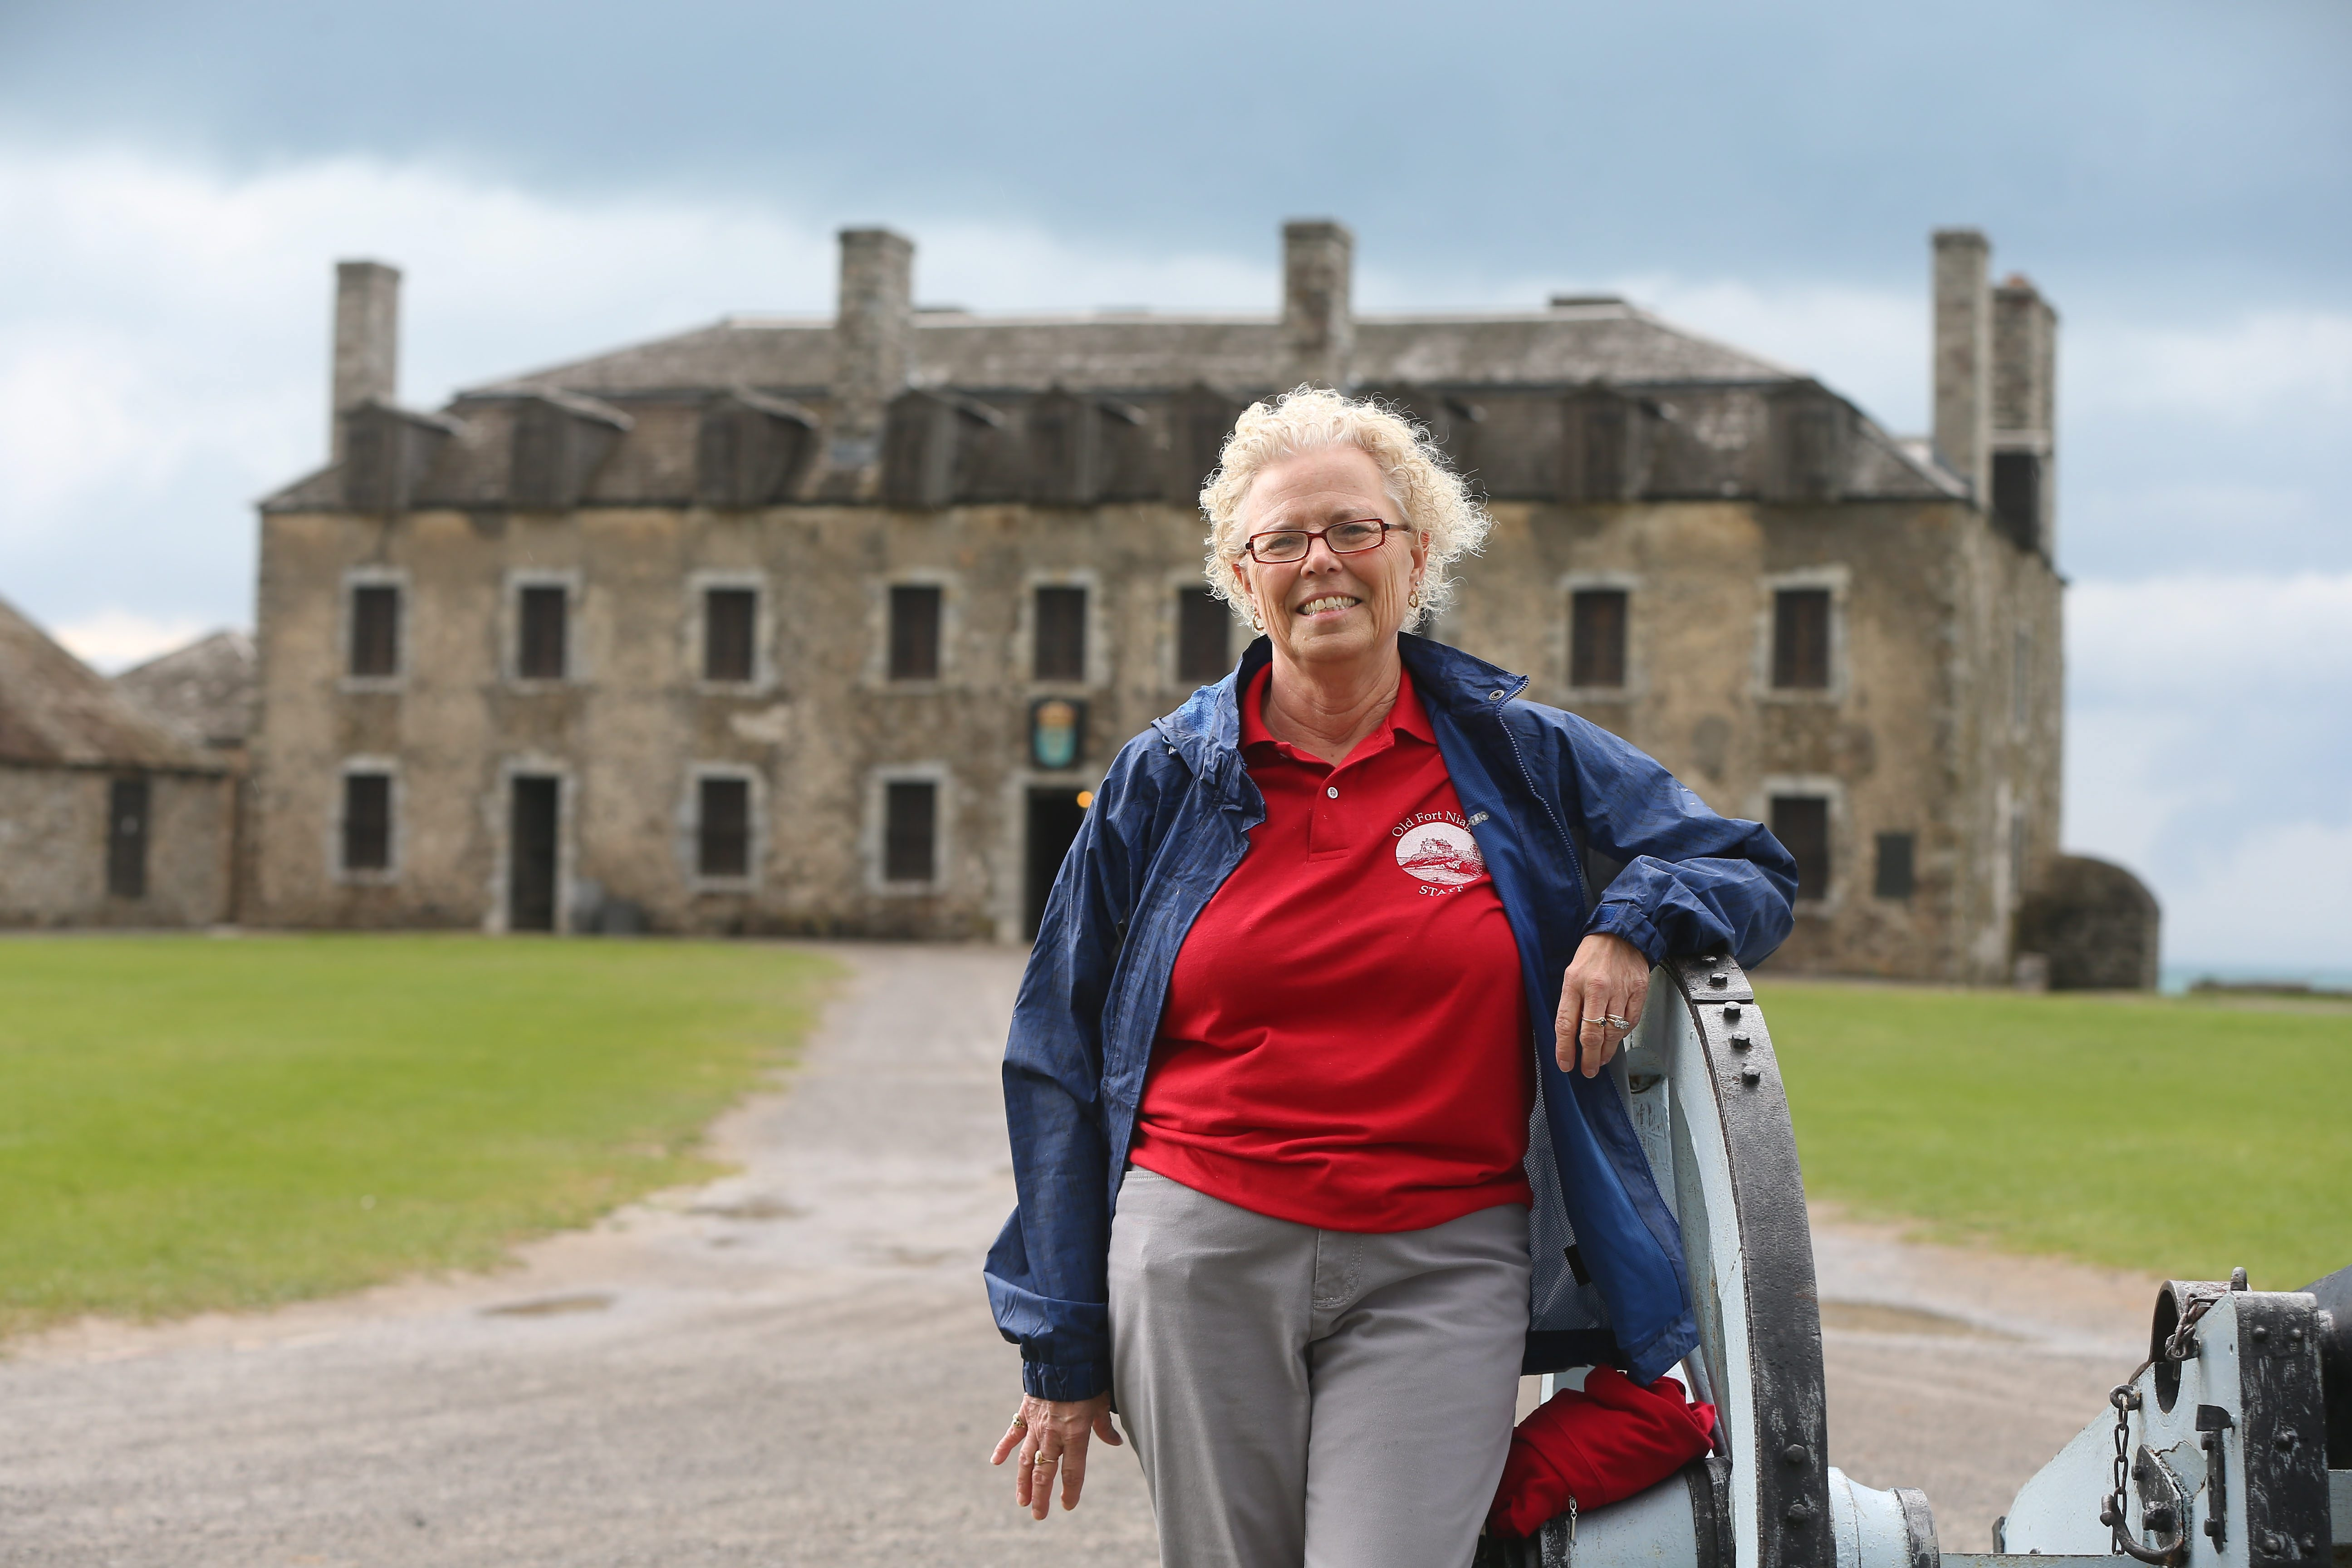 """Elaine M. Hildreth, who was an elementary school teacher for 34 years, earns praise for her """"cheerful disposition and love of history"""" as Old Fort Niagara volunteer tour guide."""